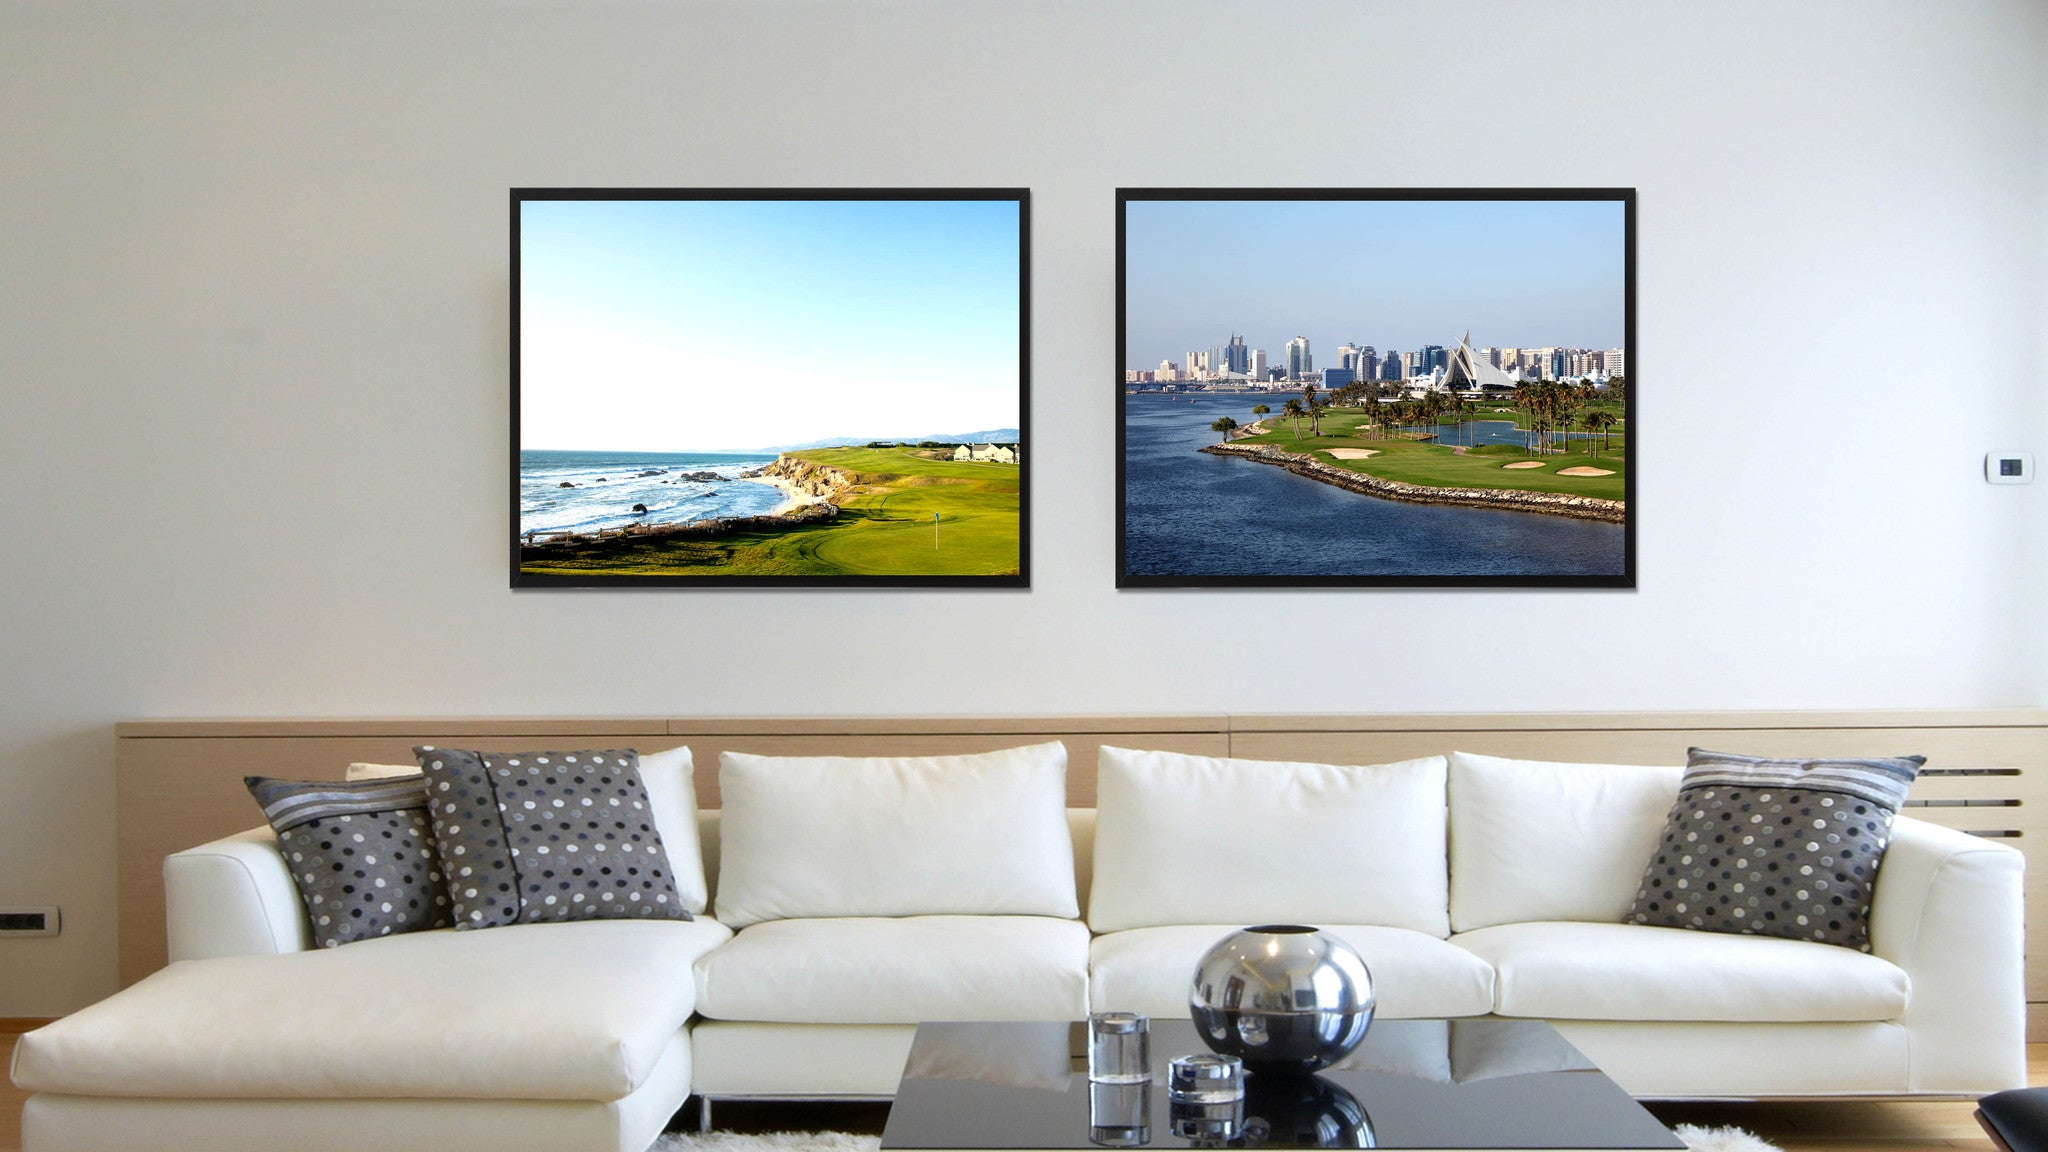 Dubai Creek Golf Course Photo Canvas Print Pictures Frames Home Décor Wall Art Gifts